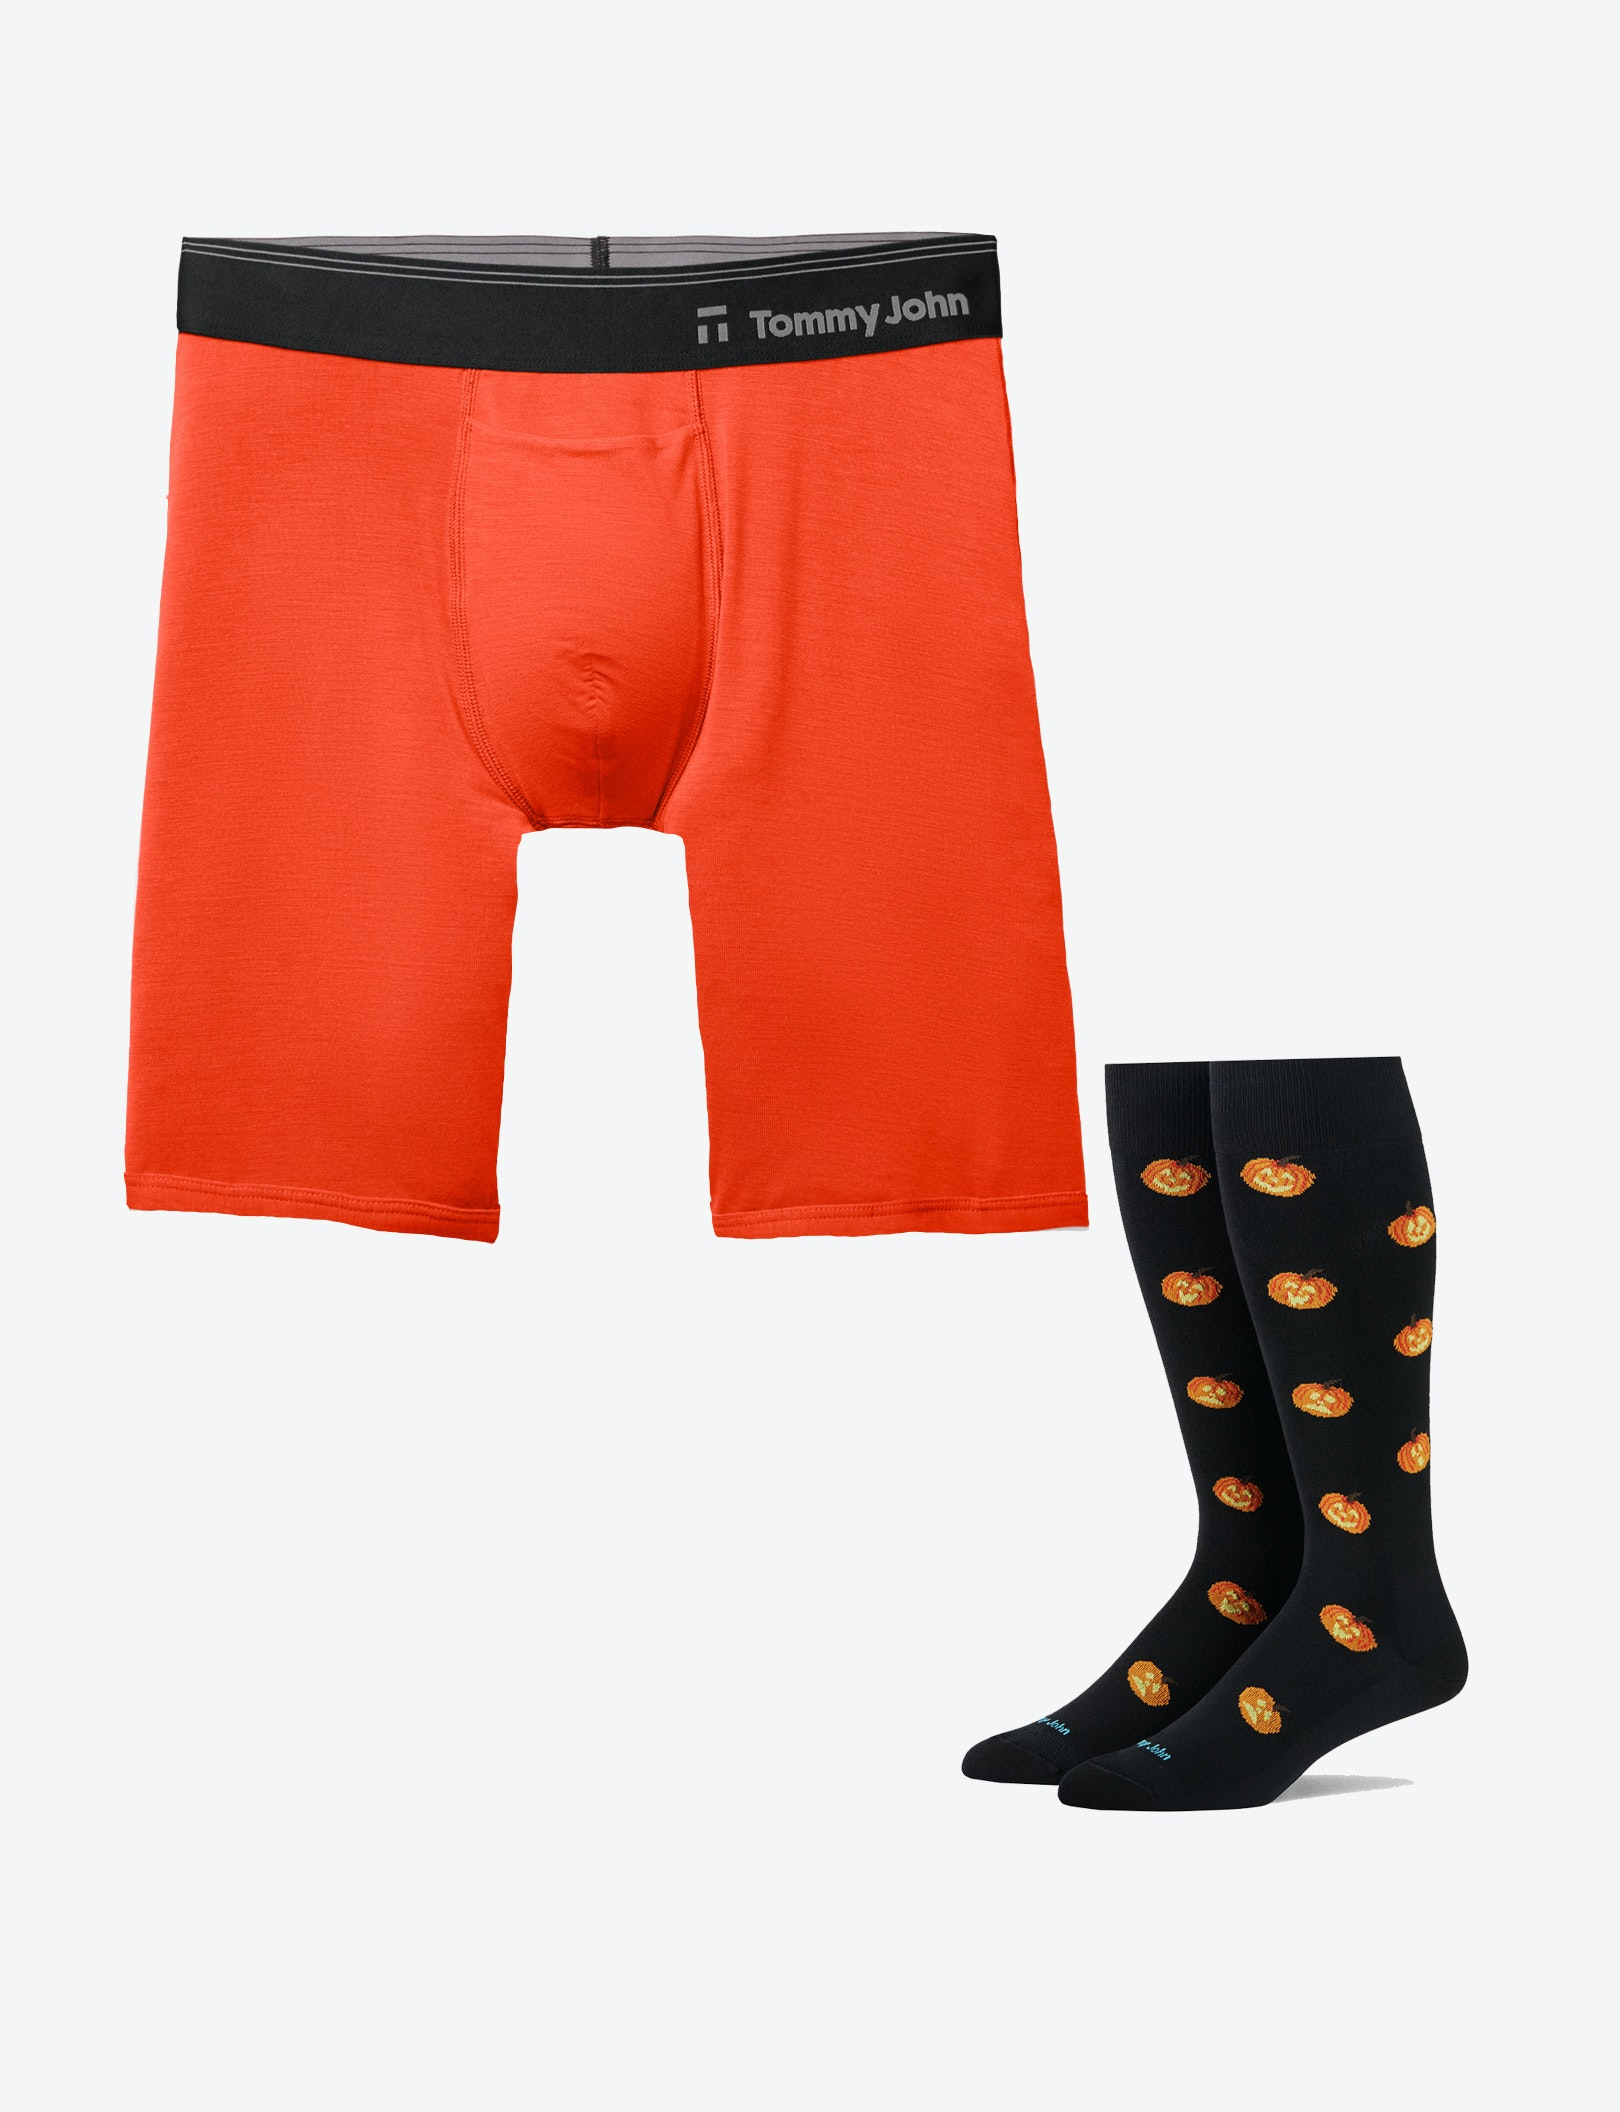 Image of Second Skin Boxer Brief and Spooky Sock Set